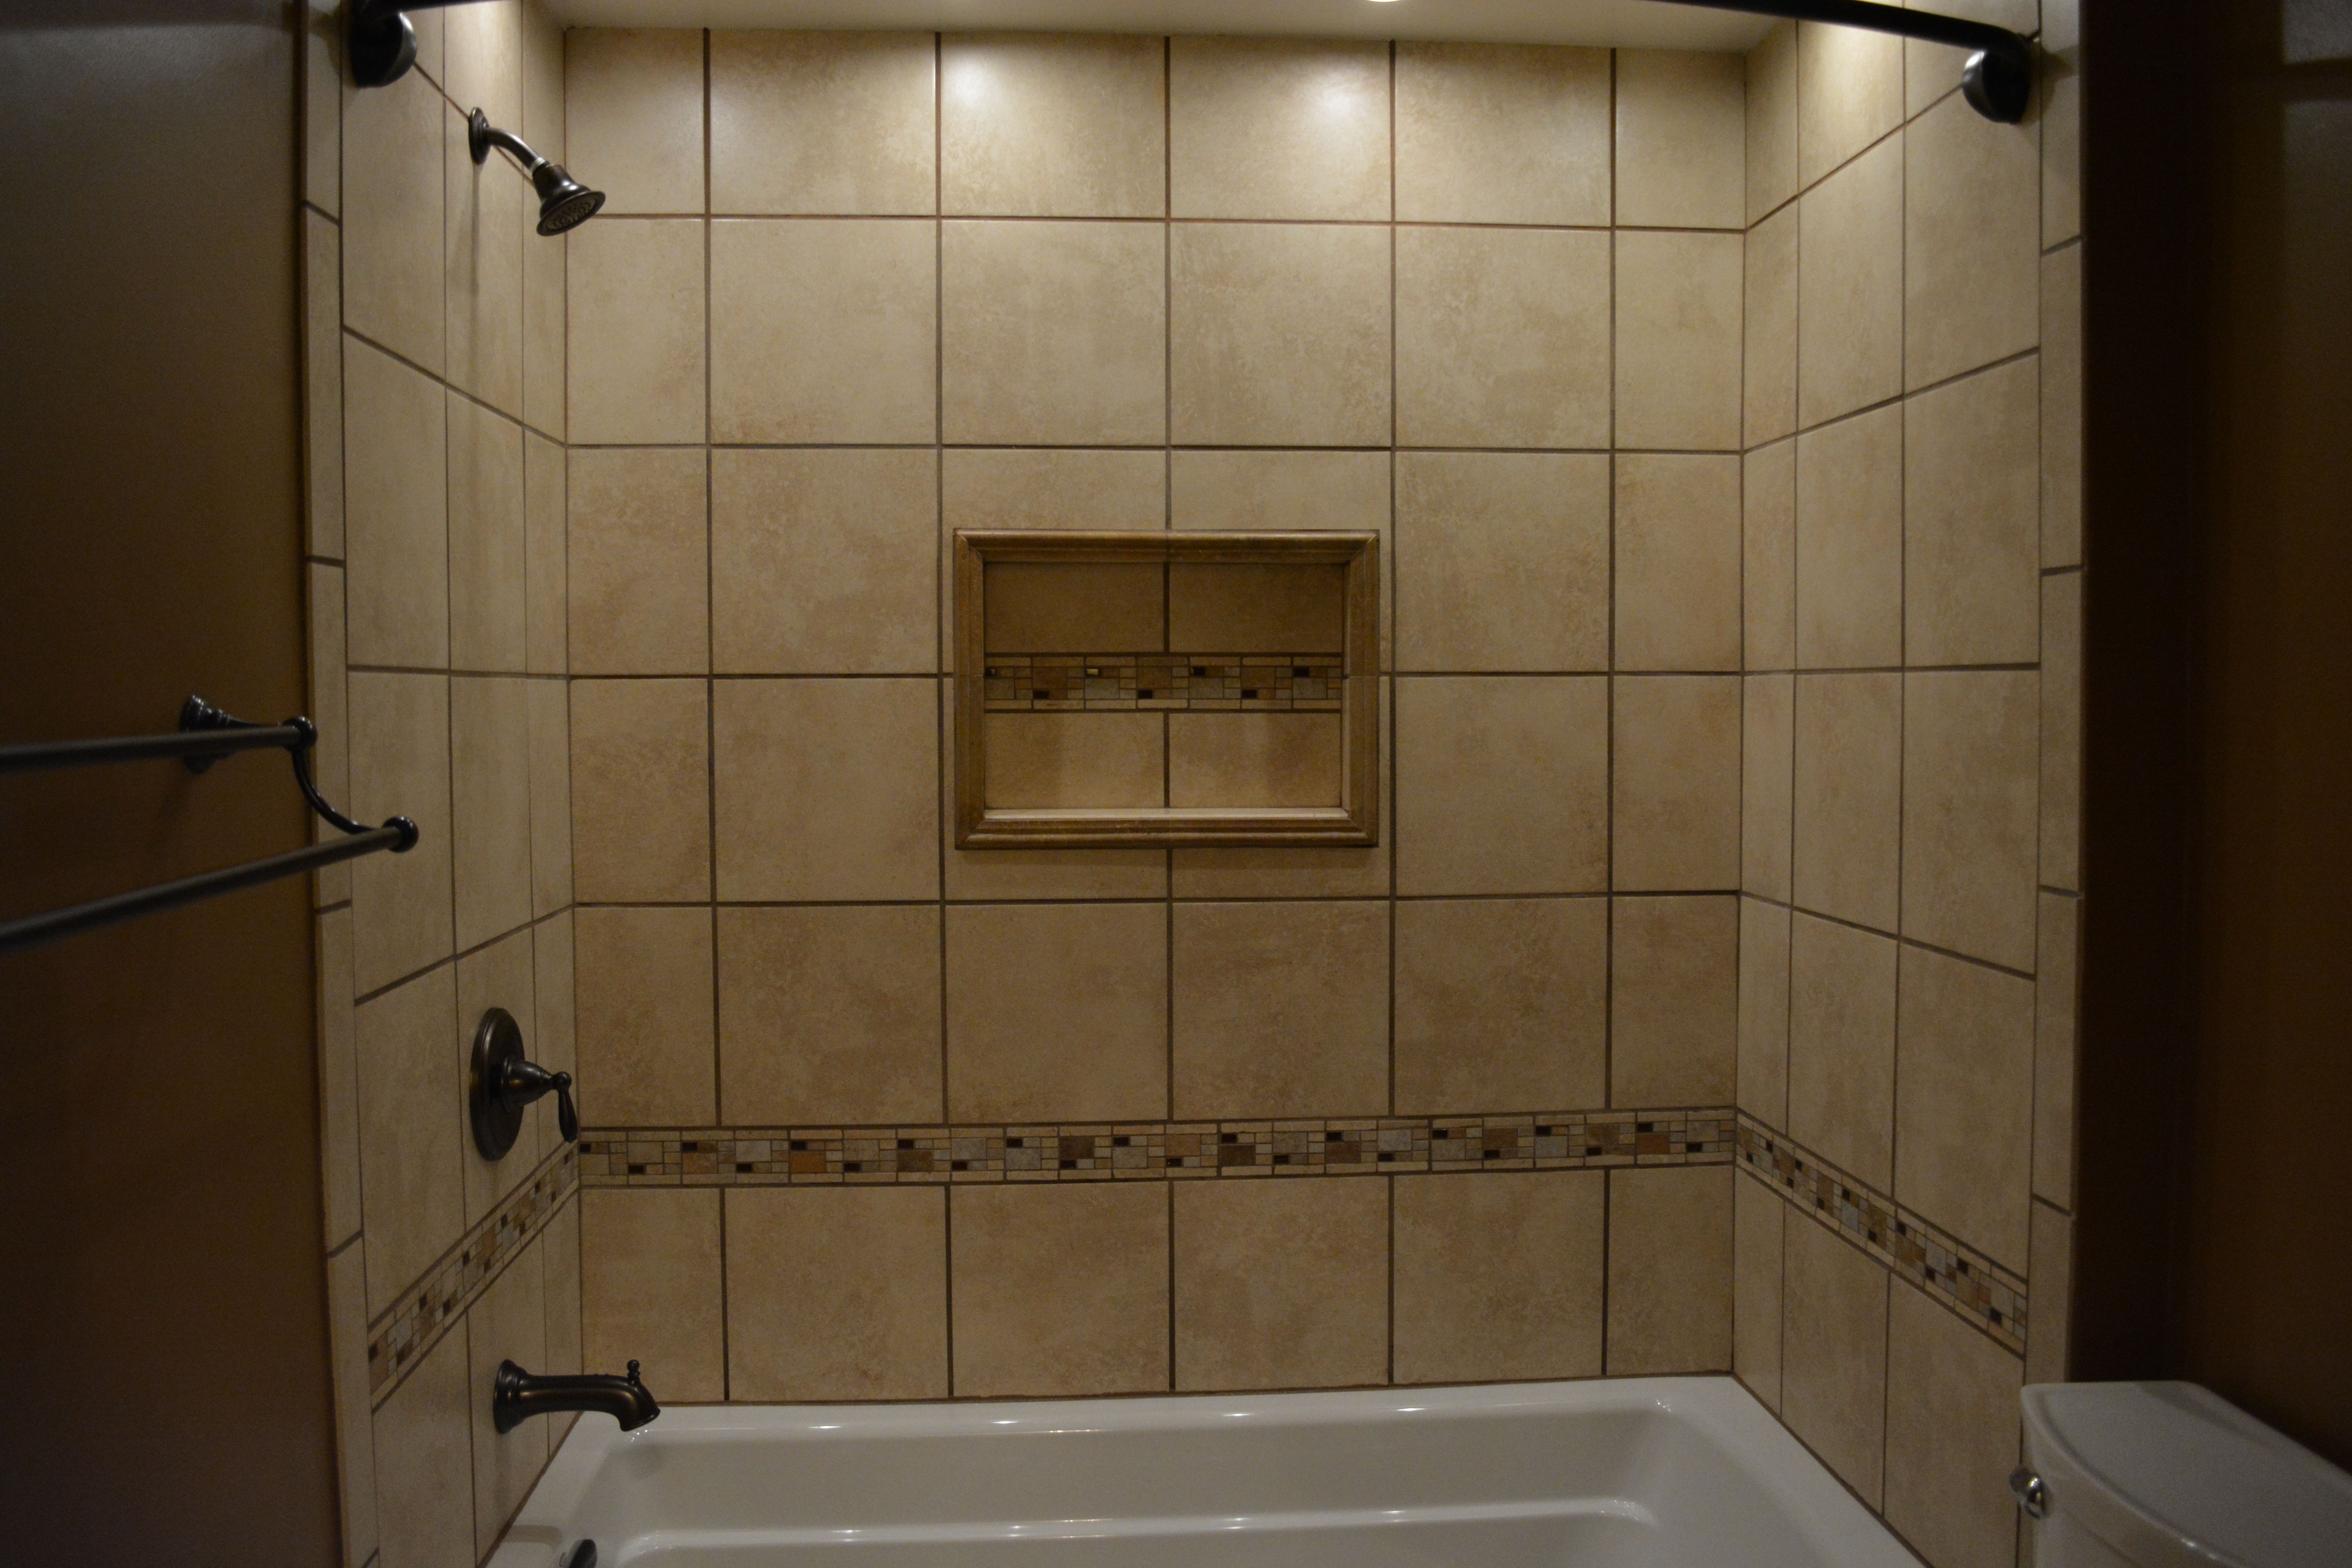 Ceramic Tile Tub Surround With Niche And Mosaic Accents 66 Kohler Soaking Moen Rubbed Bronze Faucets